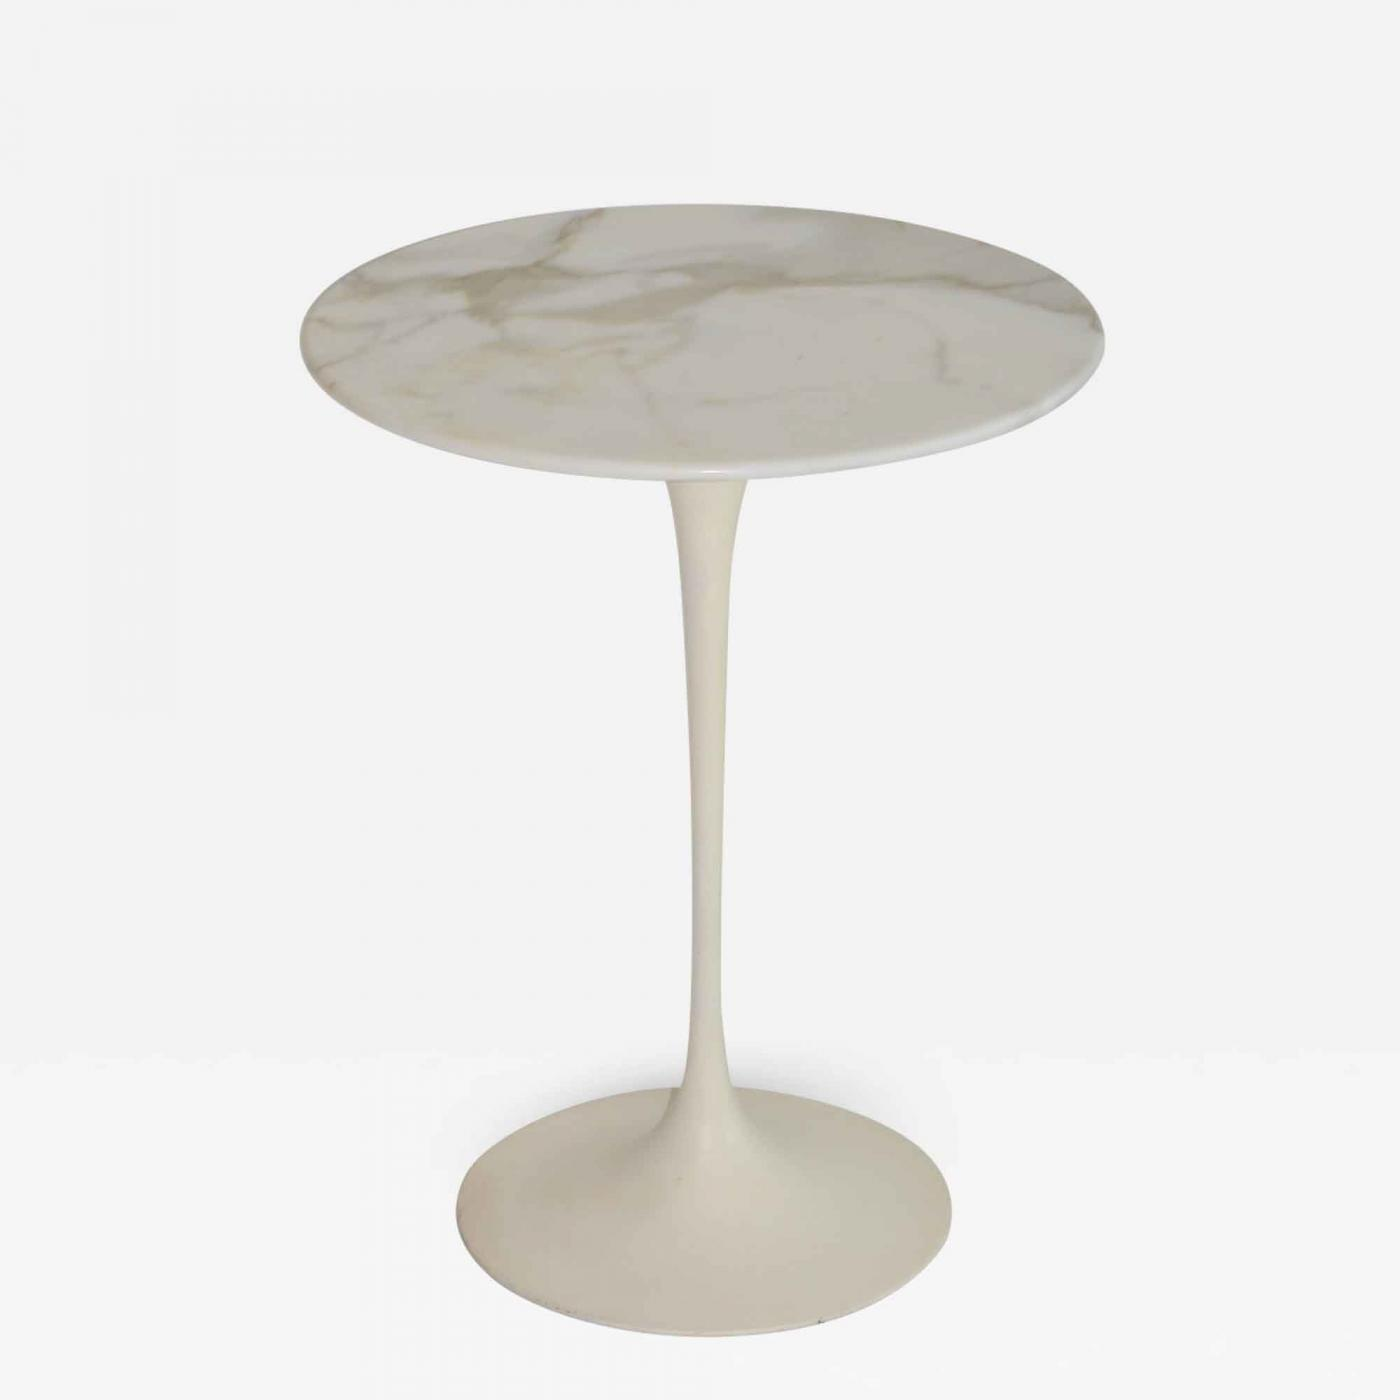 Eero Saarinen Eero Saarinen Tulip Side Table In Marble By Knoll